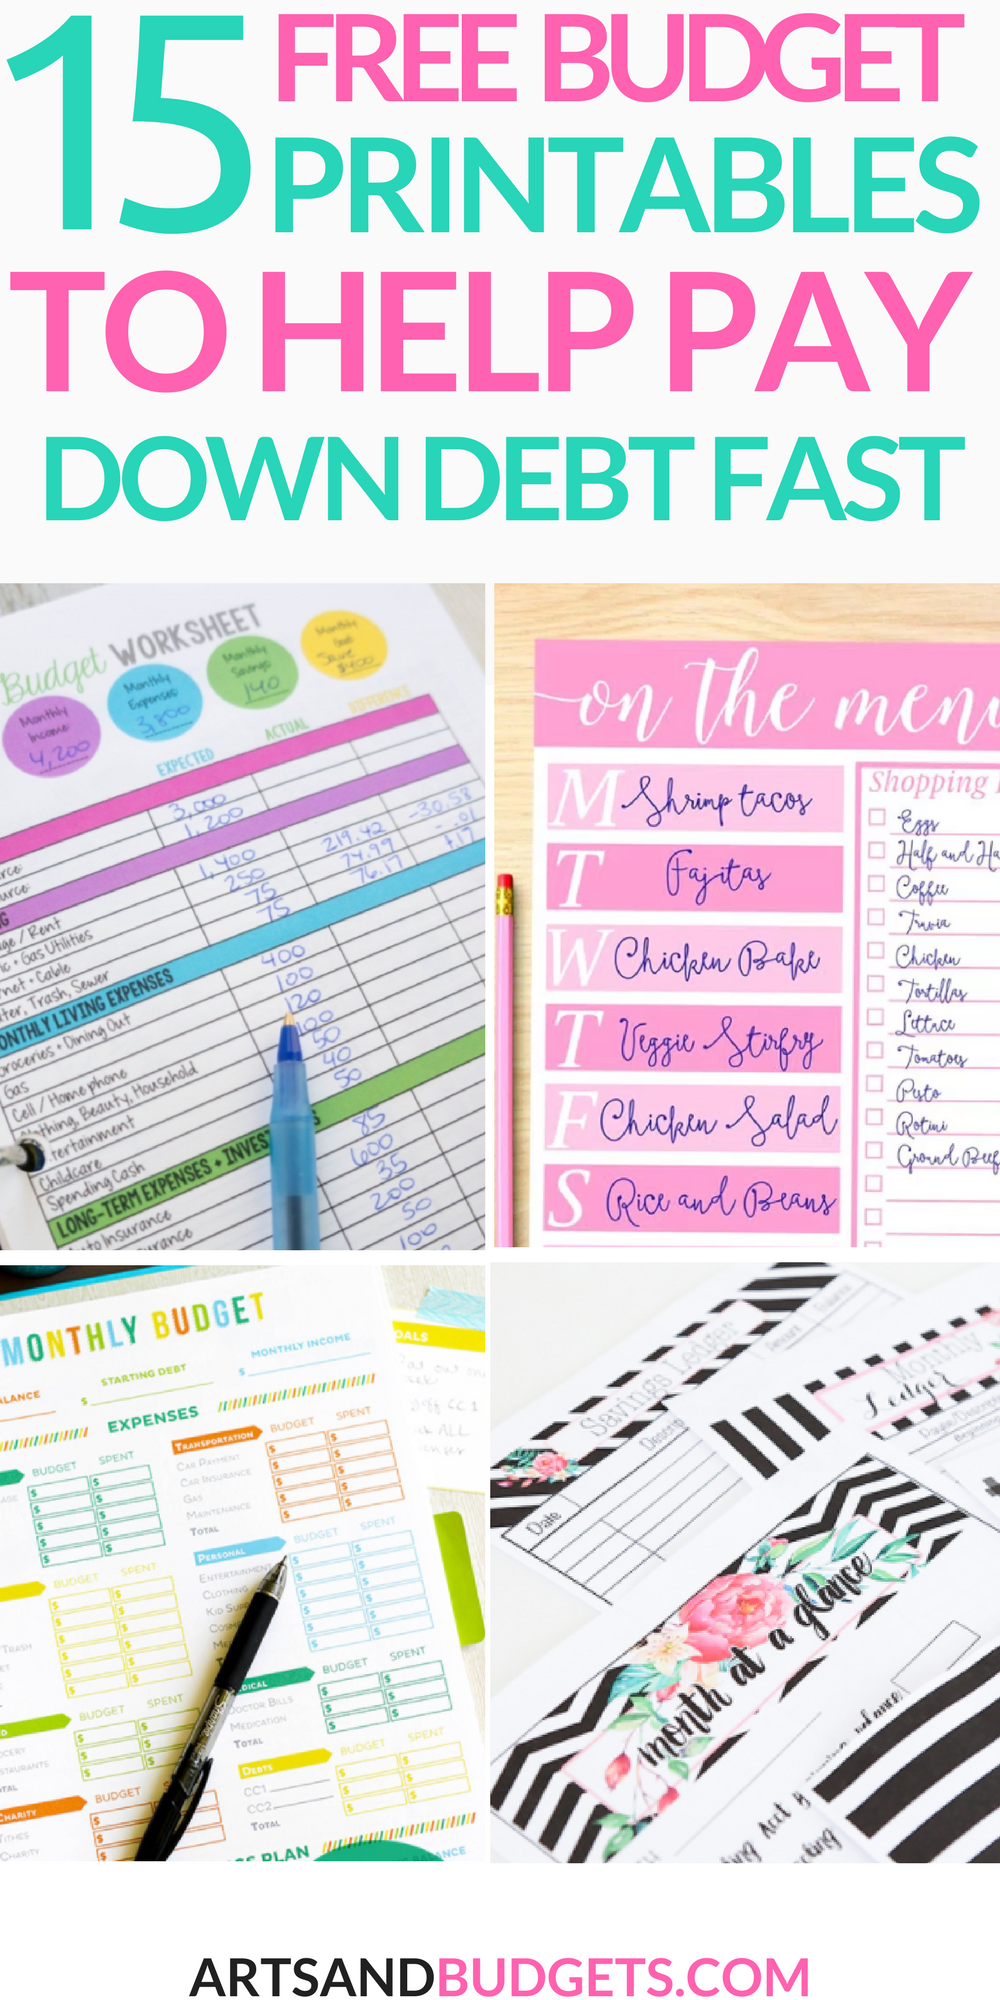 15 Free Budget Templates That Will Help Pay Down Debt Fast ...